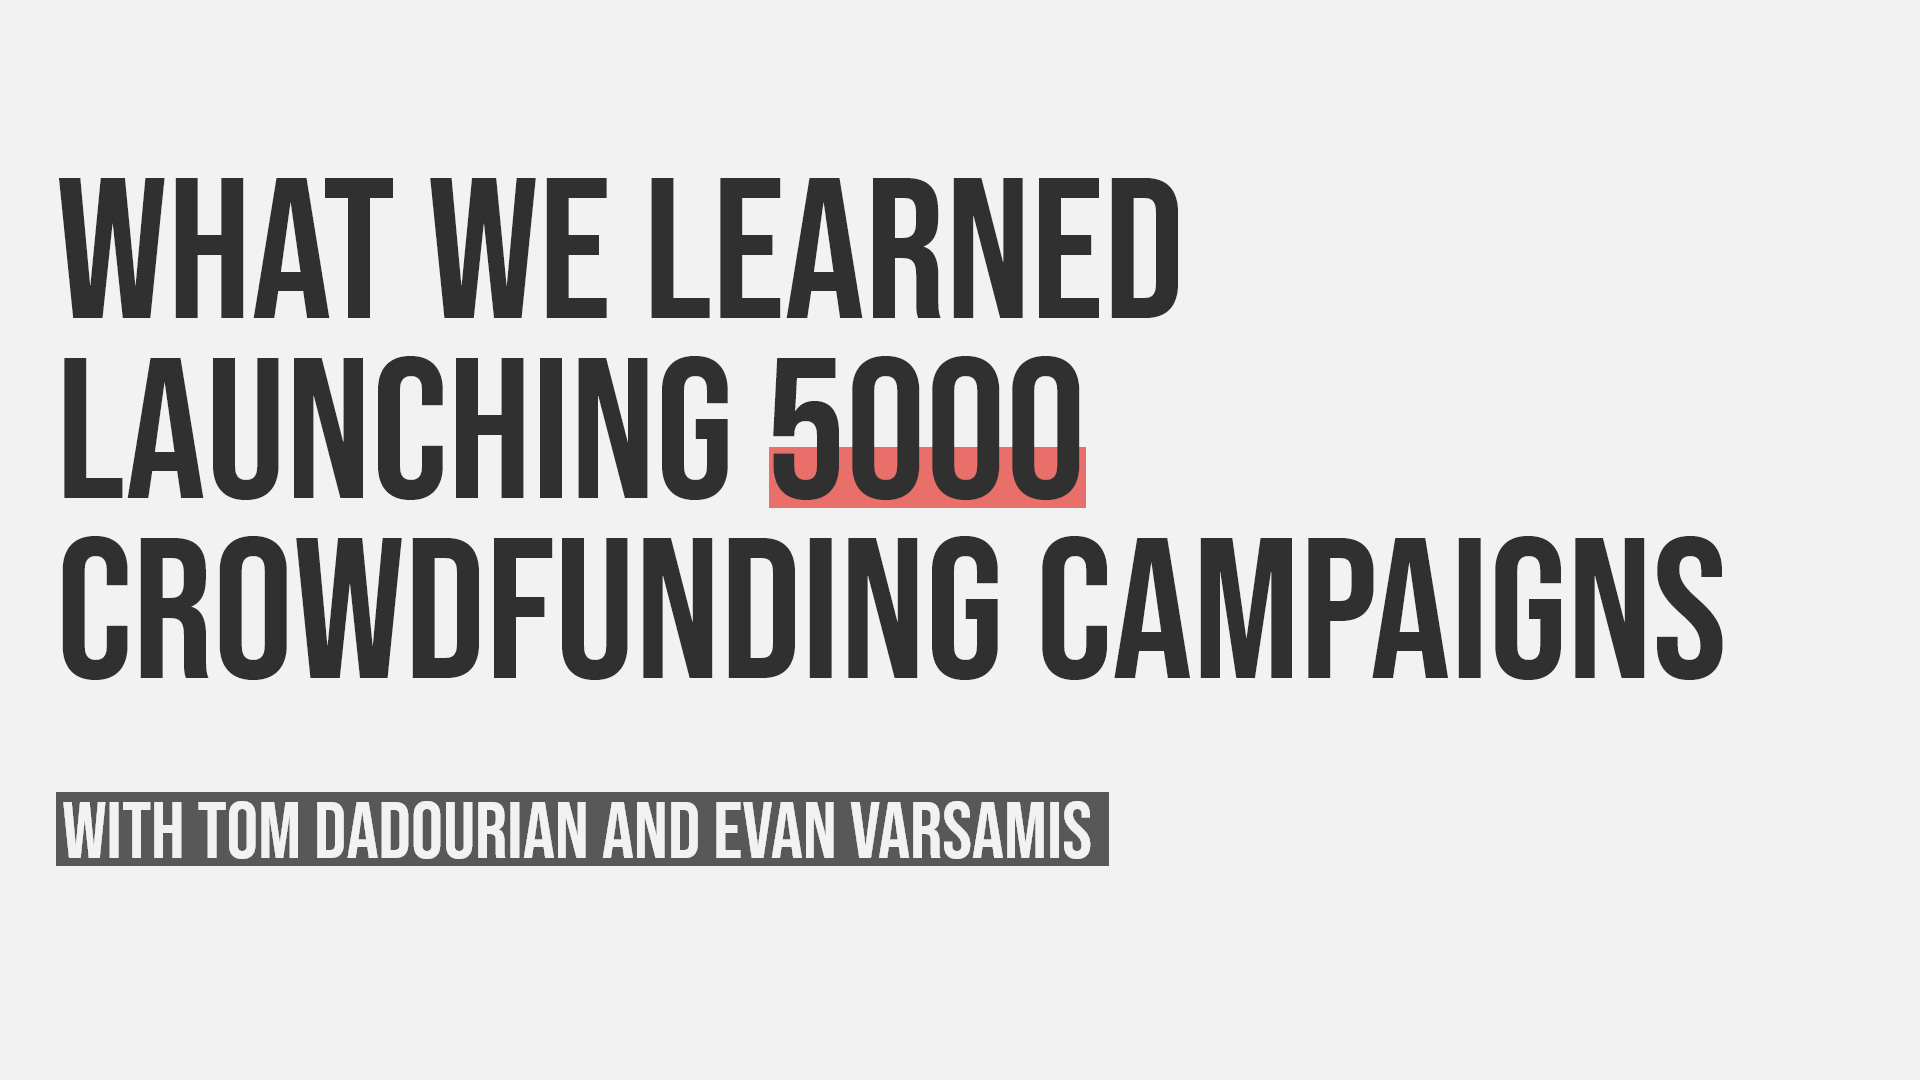 Things We've Learned Working on 5000 Crowdfunding Campaigns